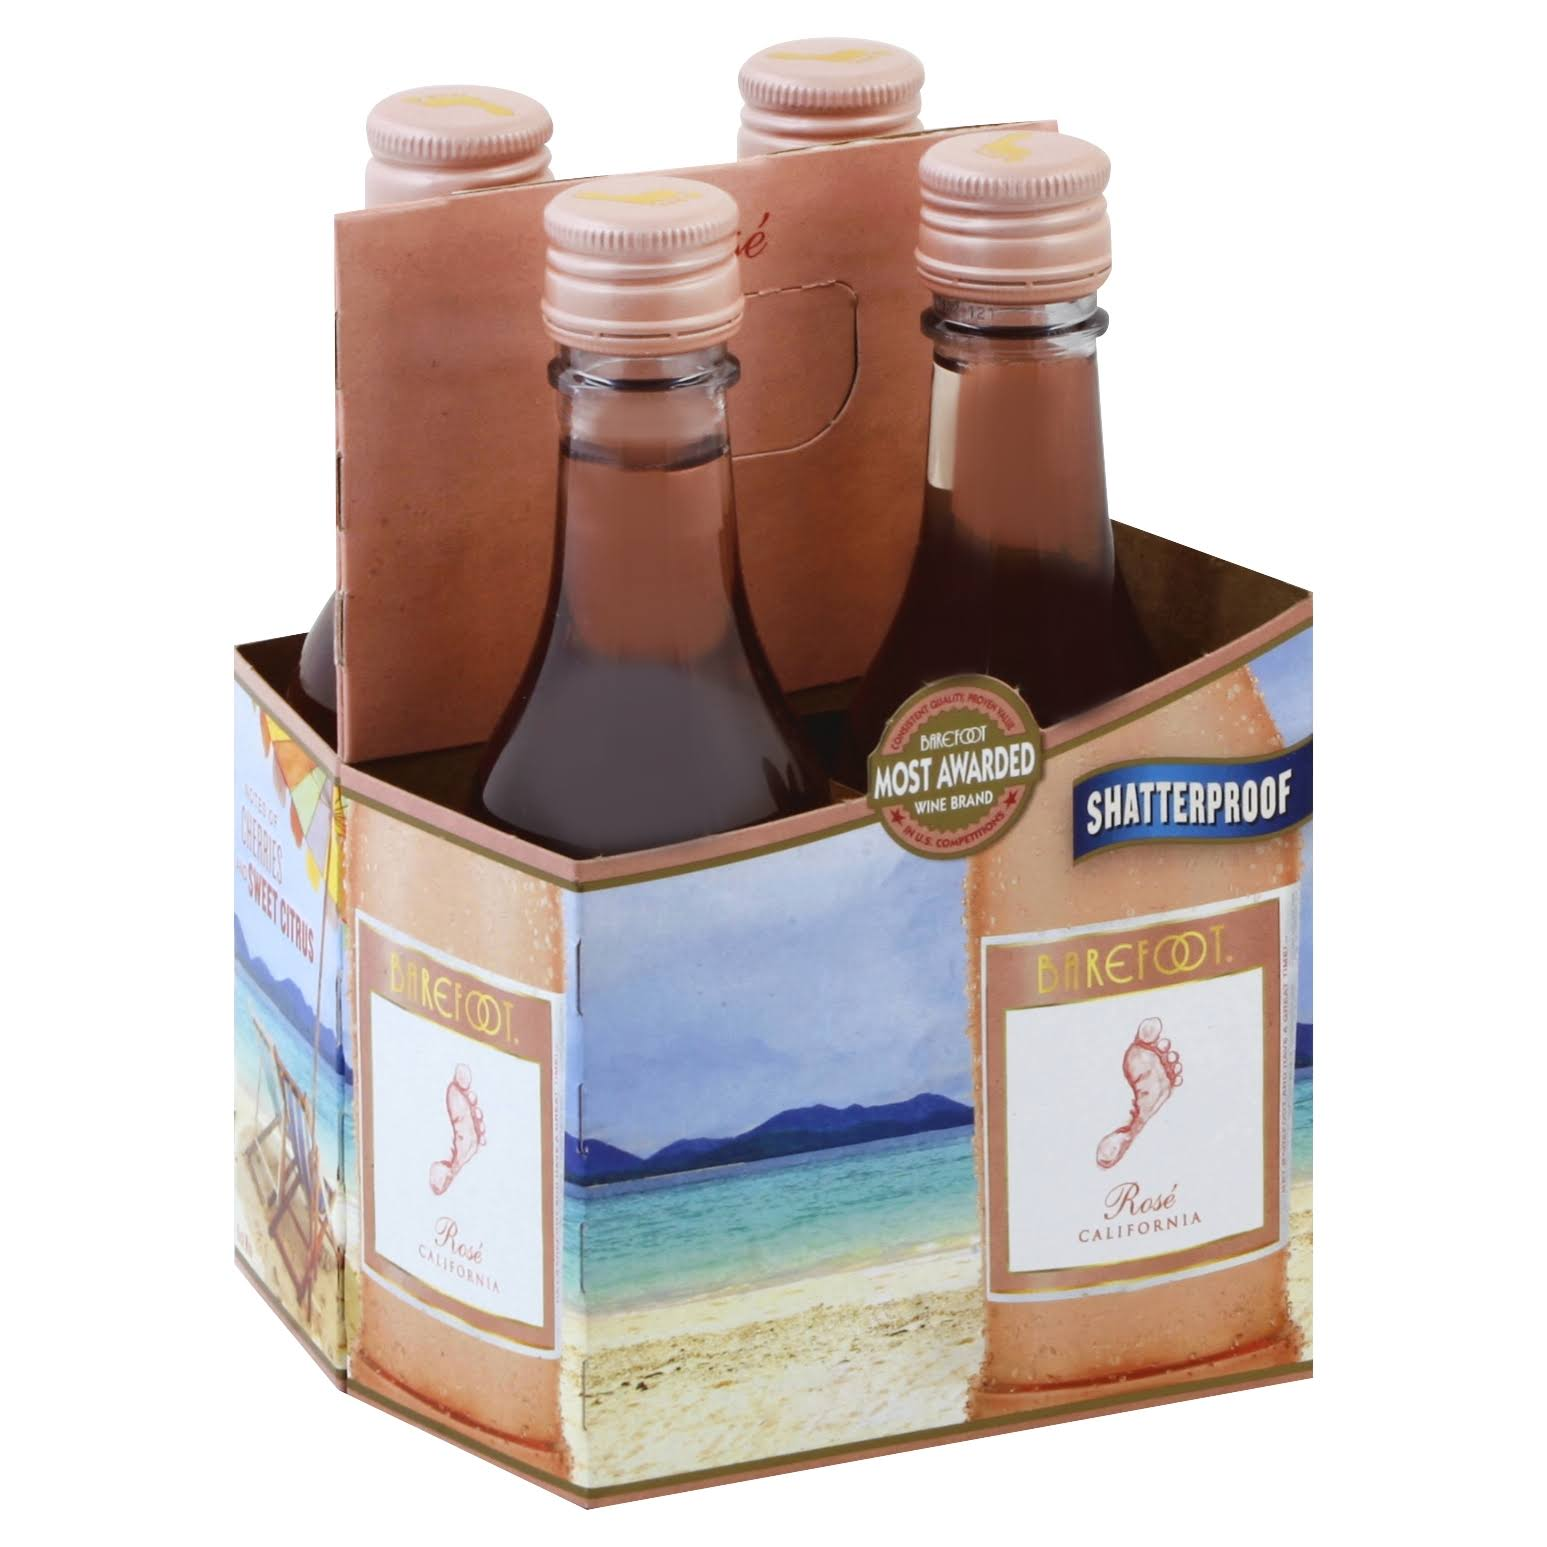 Barefoot Rose, California - 4 pack, 187 ml bottles